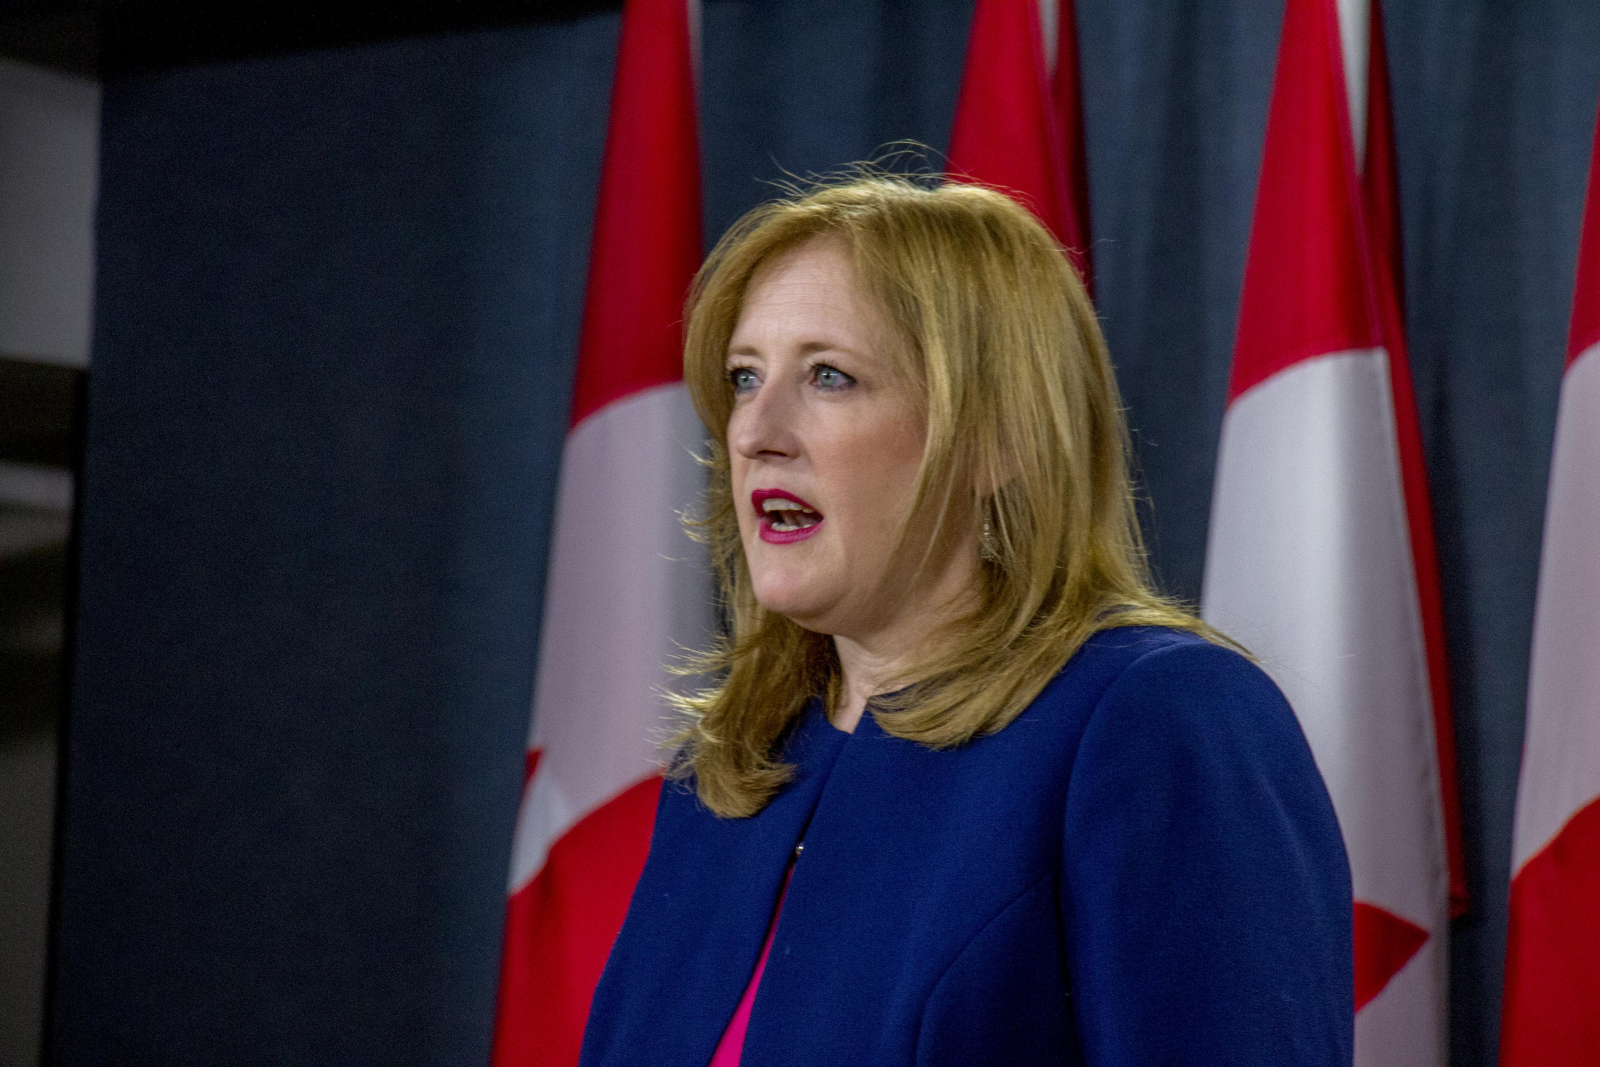 Lisa Raitt, Conservative Party of Canada, Ottawa, Canada